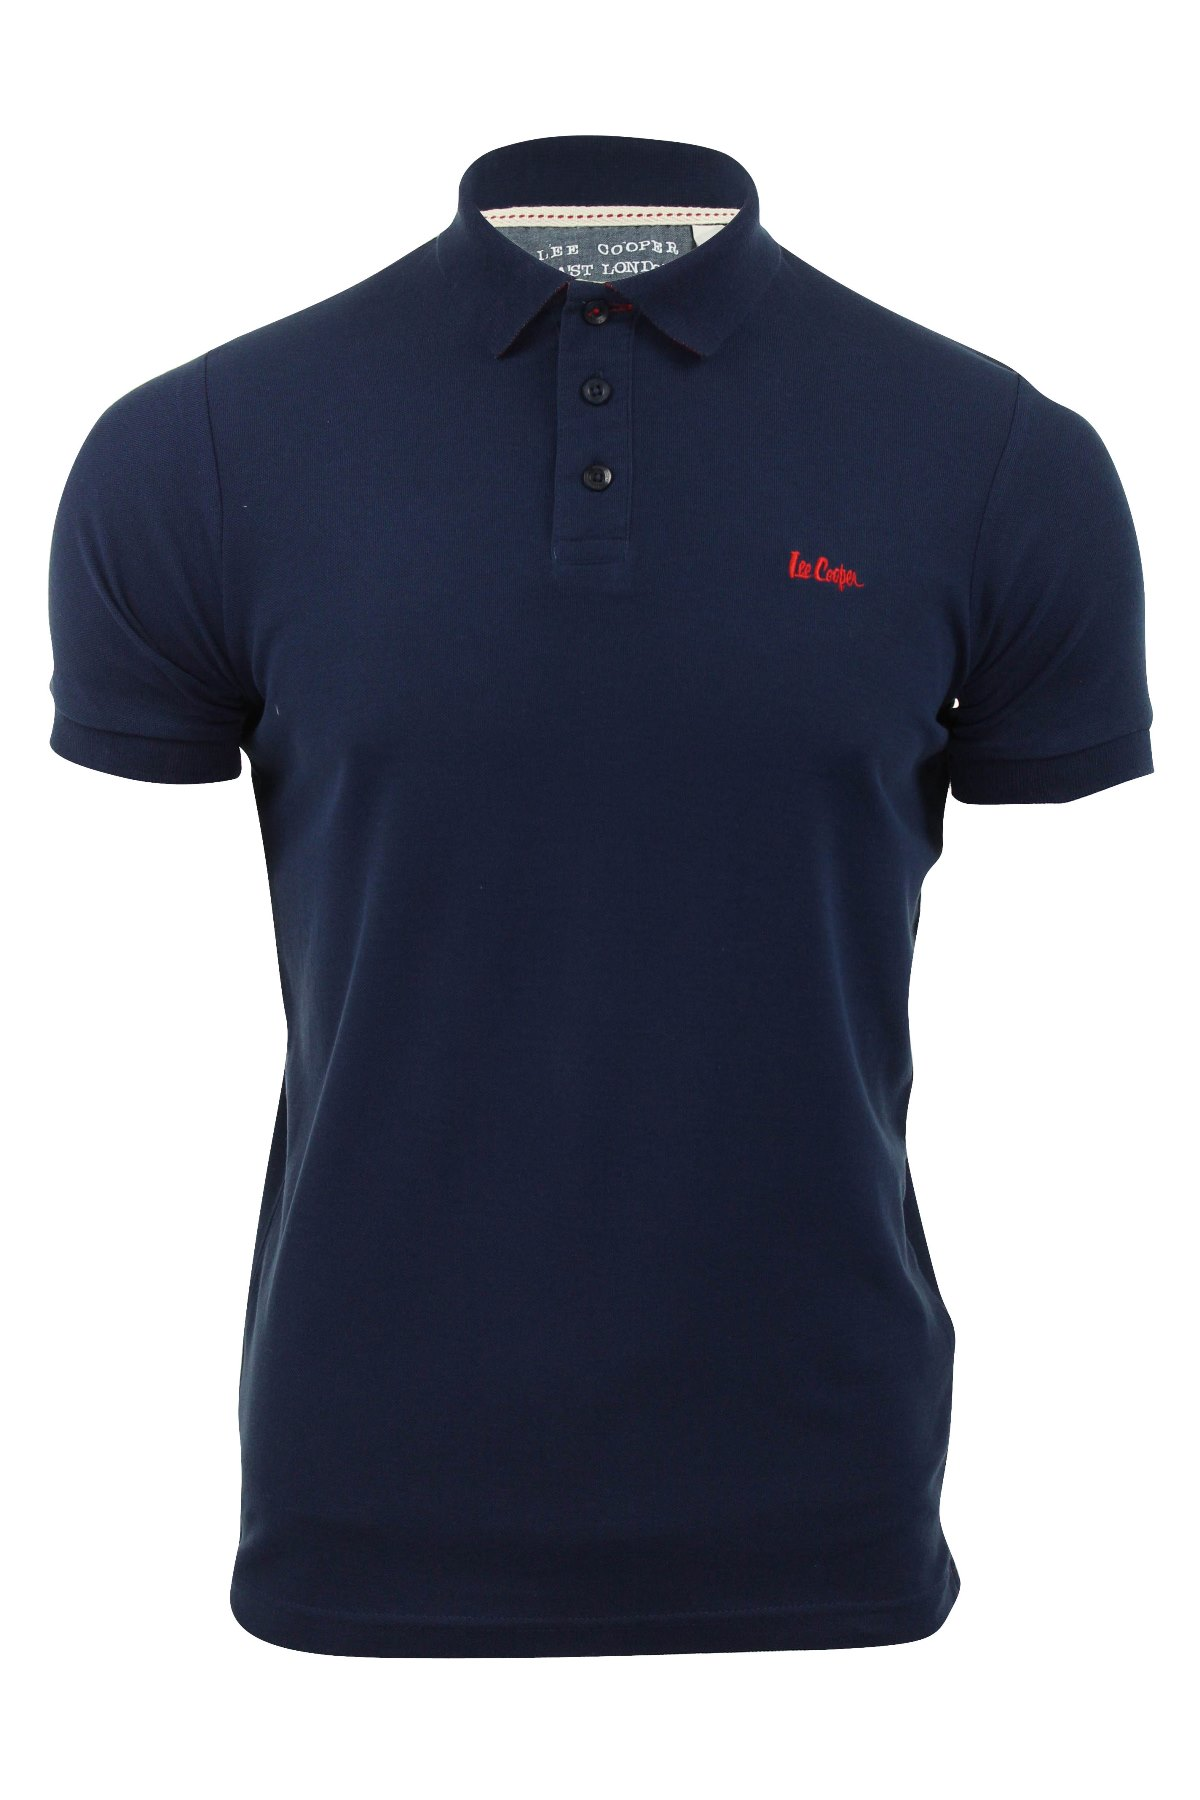 917d3460 Mens Pique Polo Shirt Lee Cooper Premium Range 'Woburn' T Shirts | eBay